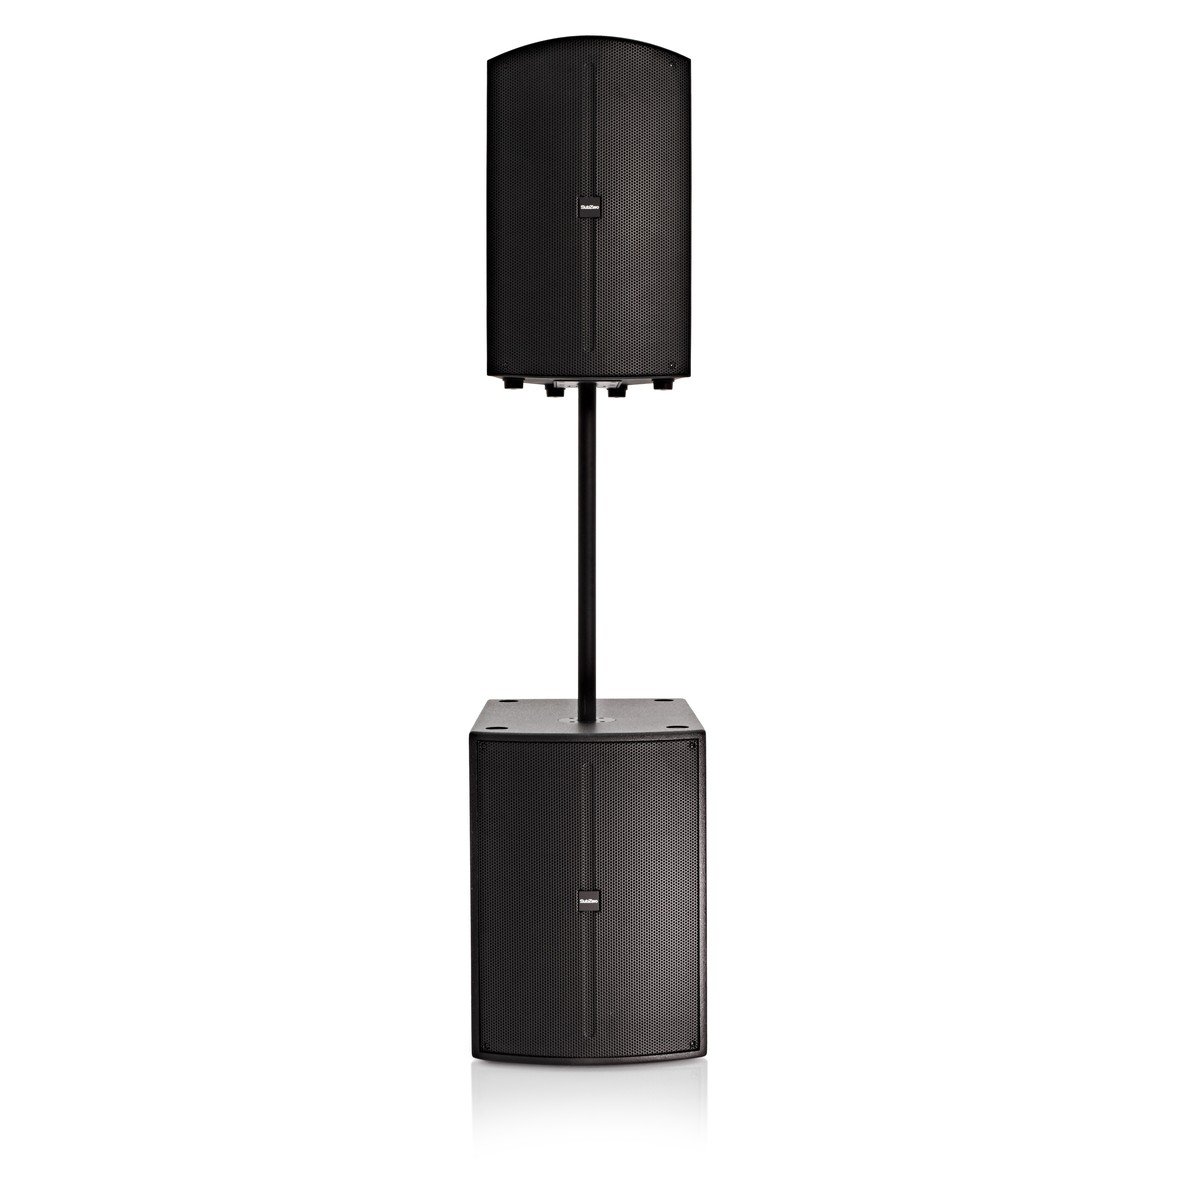 Subzero 12 Active Dsp Speaker And 15 Subwoofer At Gear4music Tone Control Include Out Previous Image